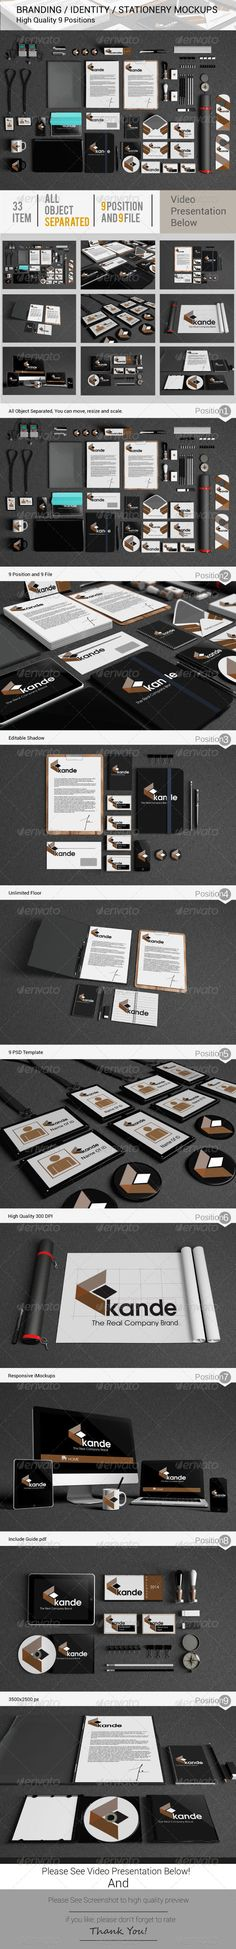 Branding / Identity / Stationery Mockups — Photoshop PSD #realistic #clean • Available here → https://graphicriver.net/item/branding-identity-stationery-mockups/5249604?ref=pxcr